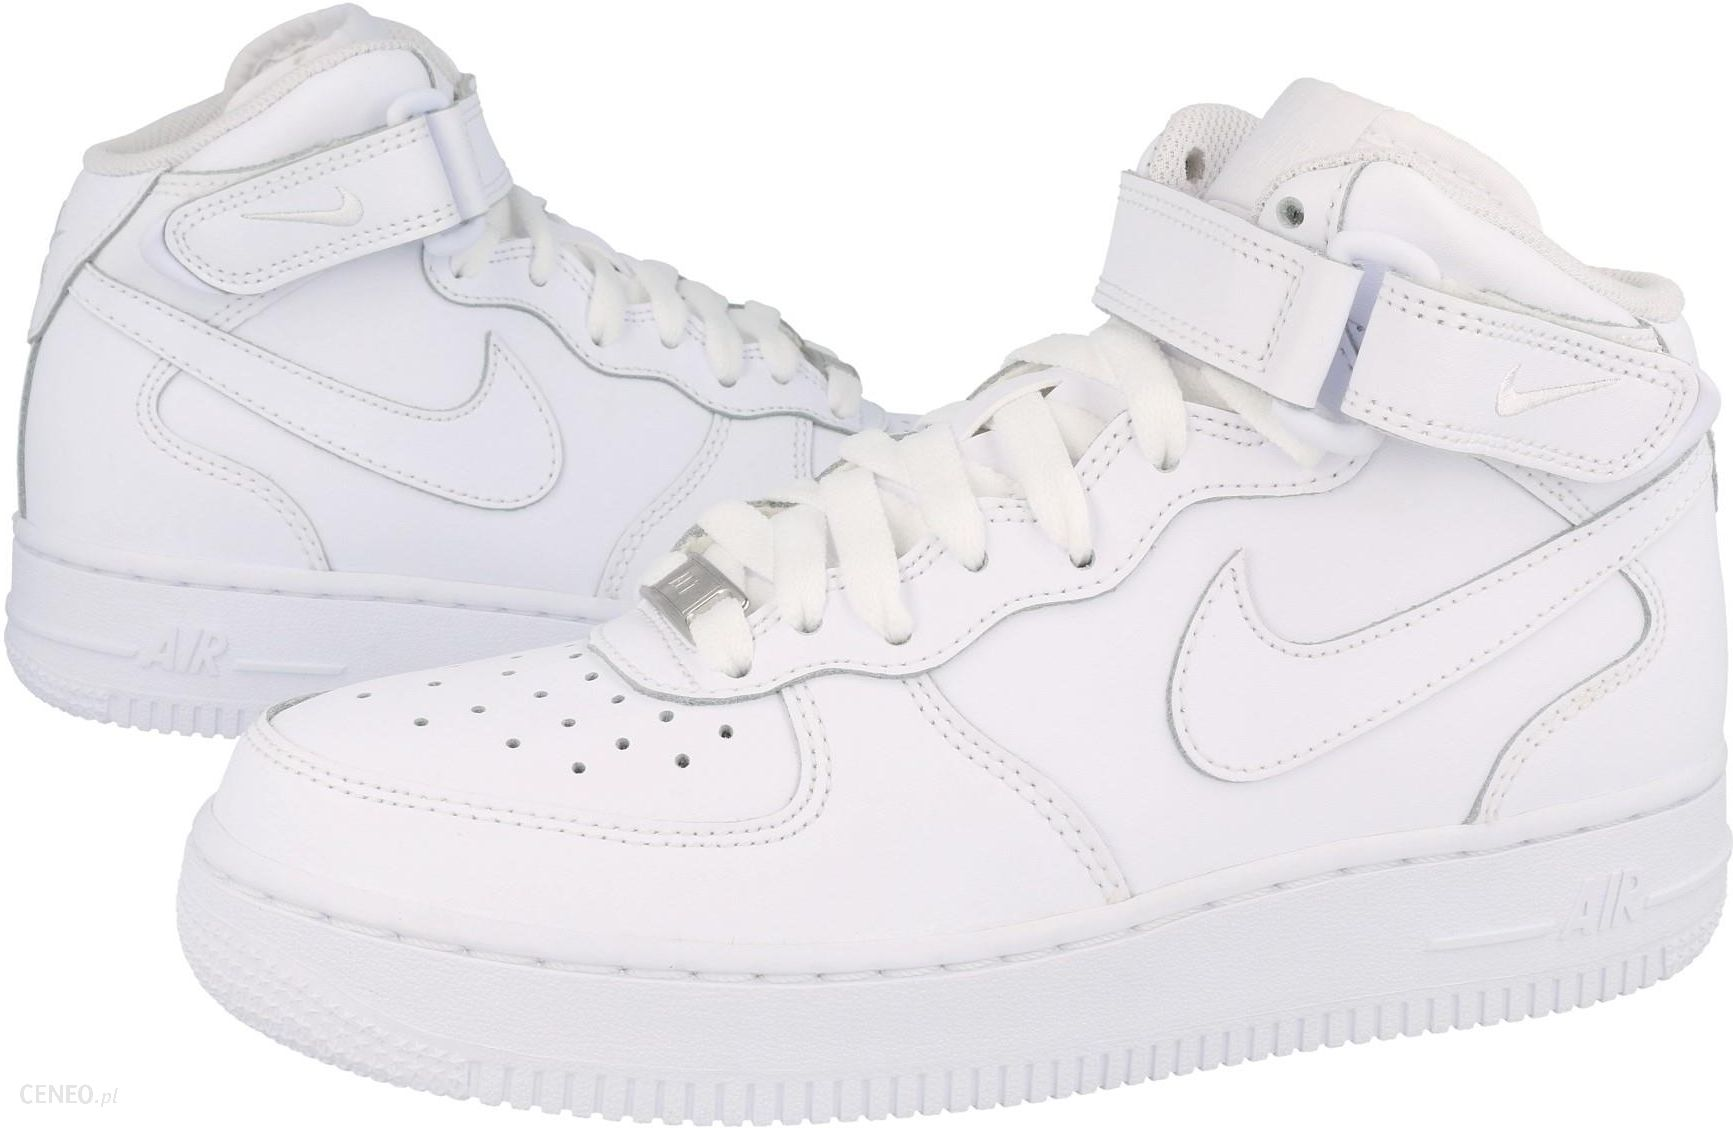 new products e0184 b2bde Buty damskie Nike Air Force 1 MID 314195-113 39 - Ceny i opinie - Ceneo.pl